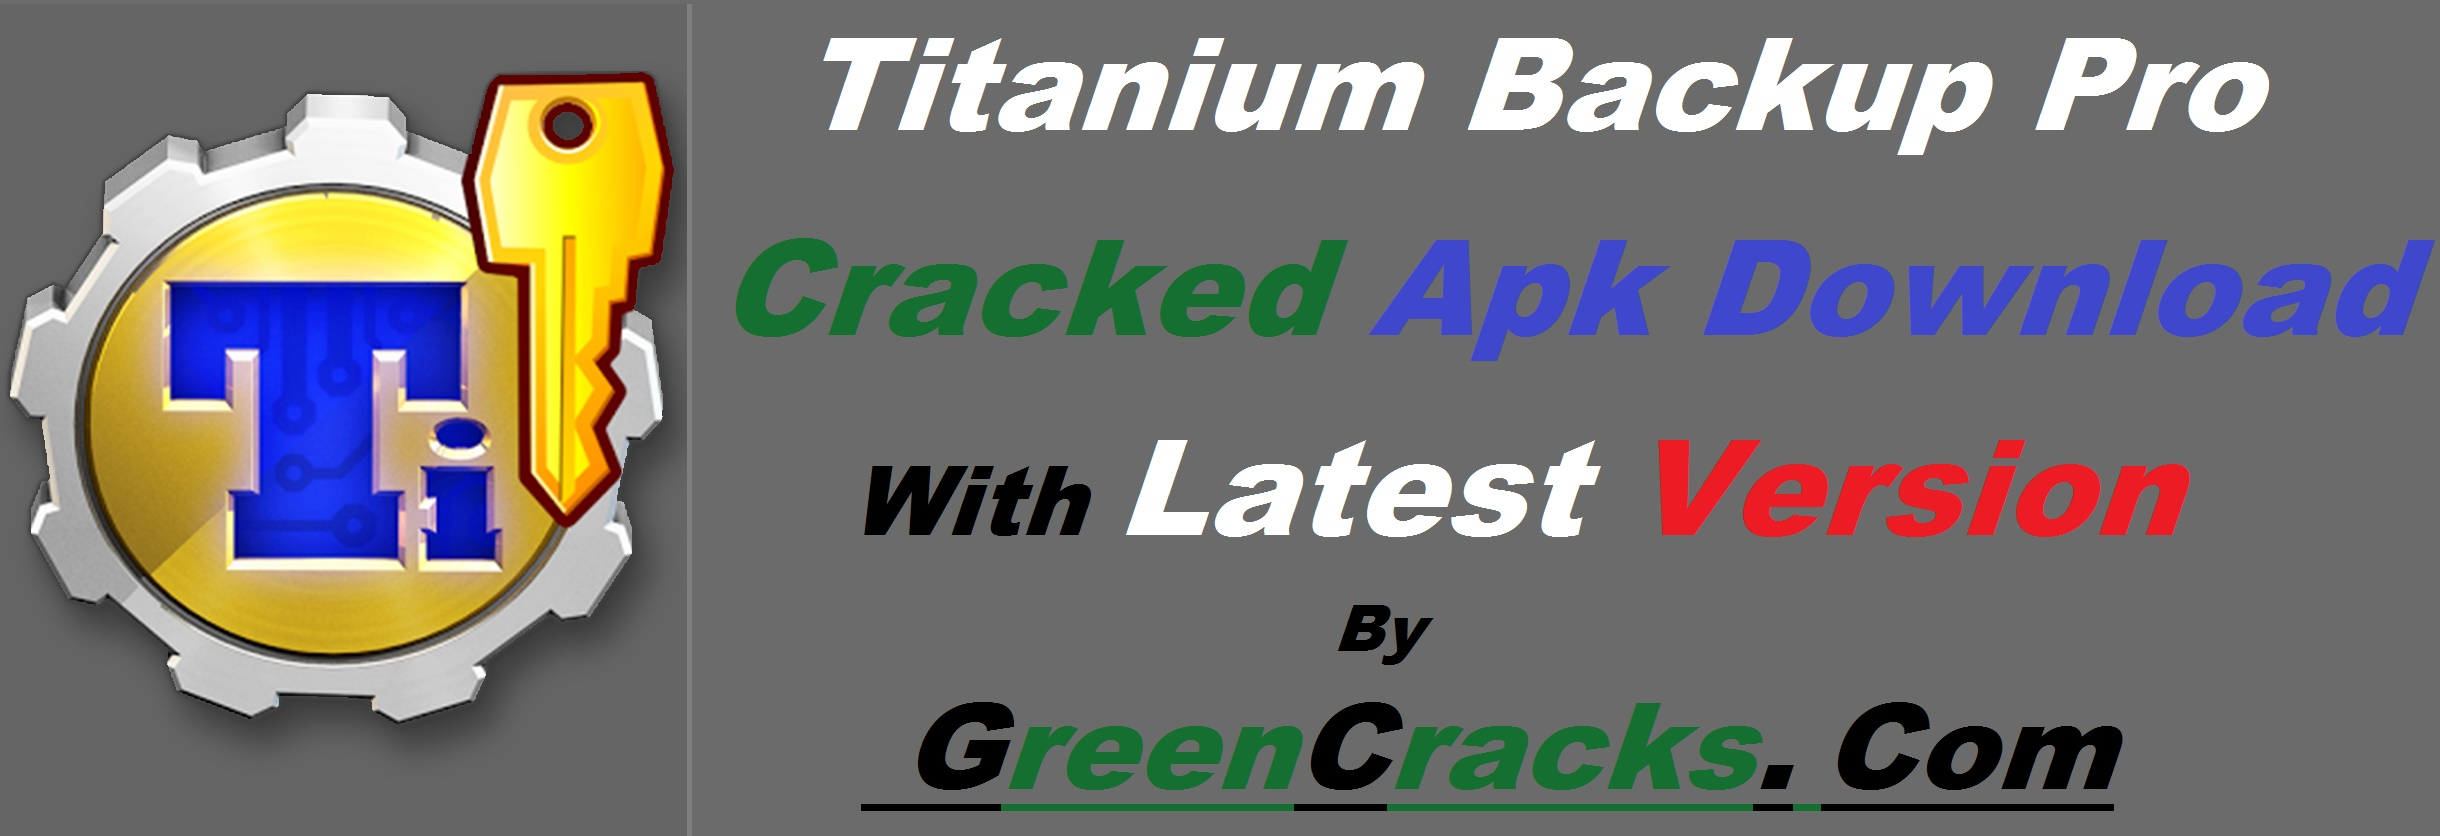 titanium backup review